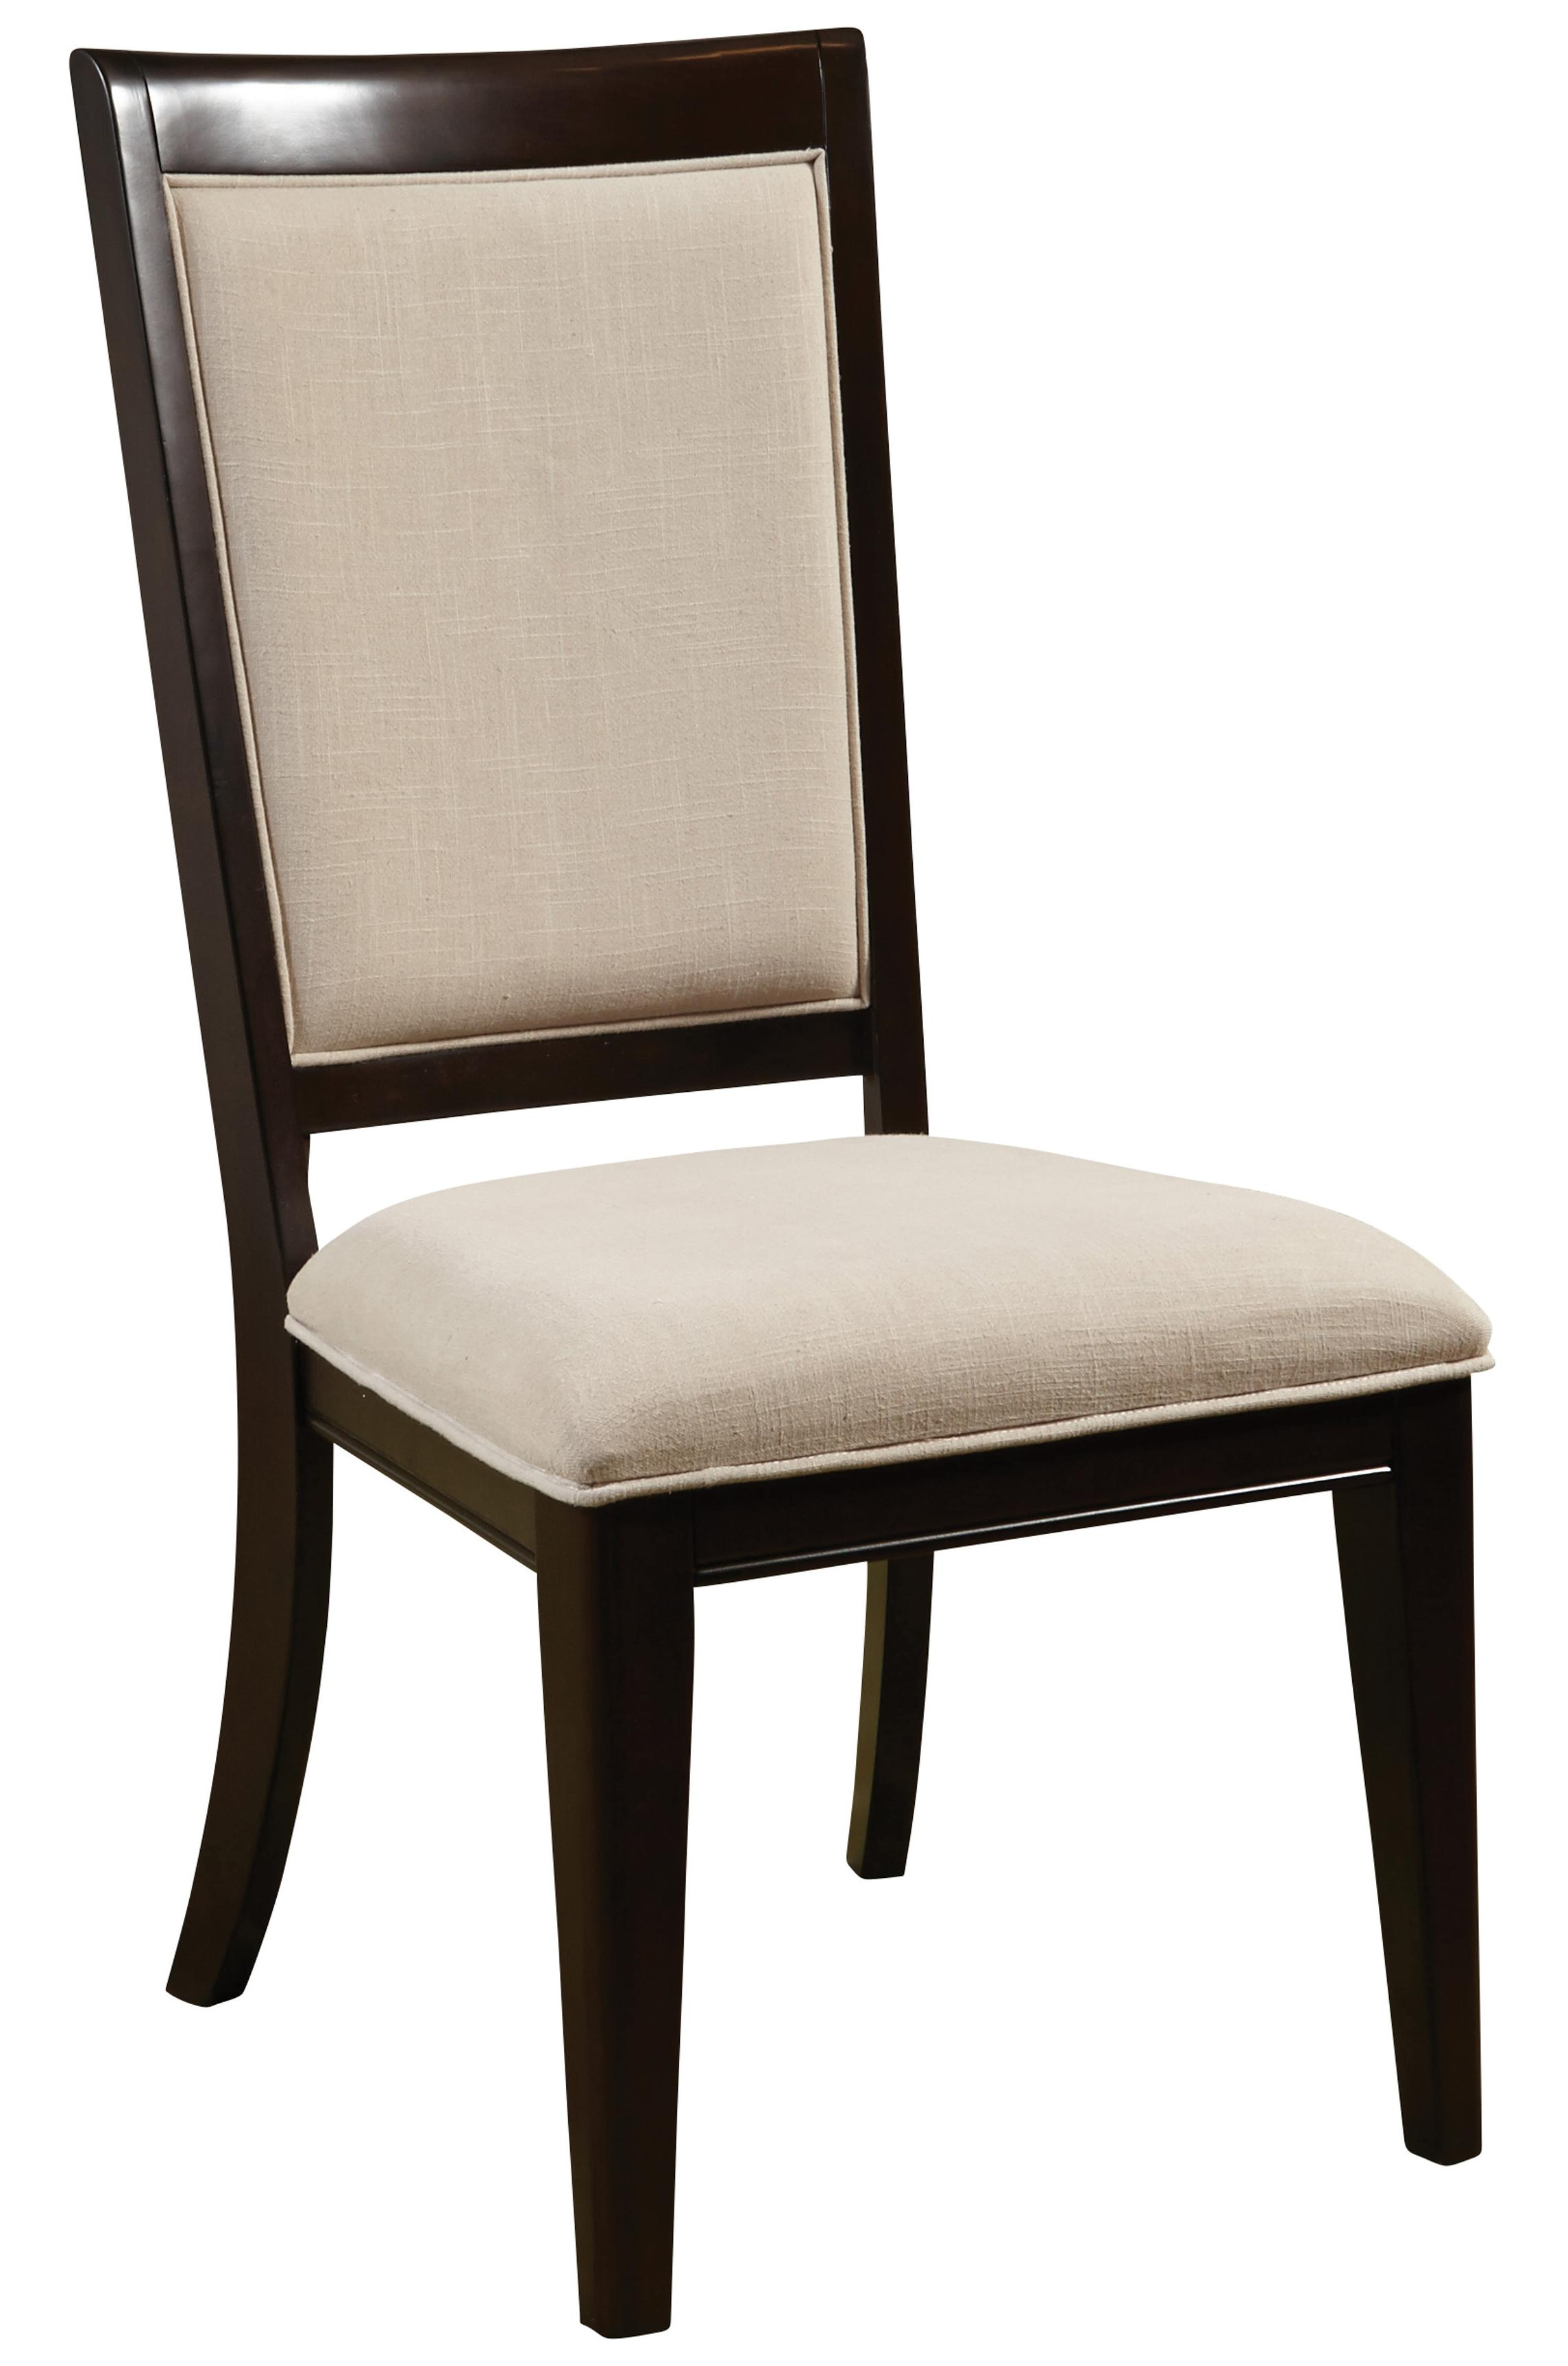 Samuel Lawrence Brighton Side Chair - Item Number: 8672-154